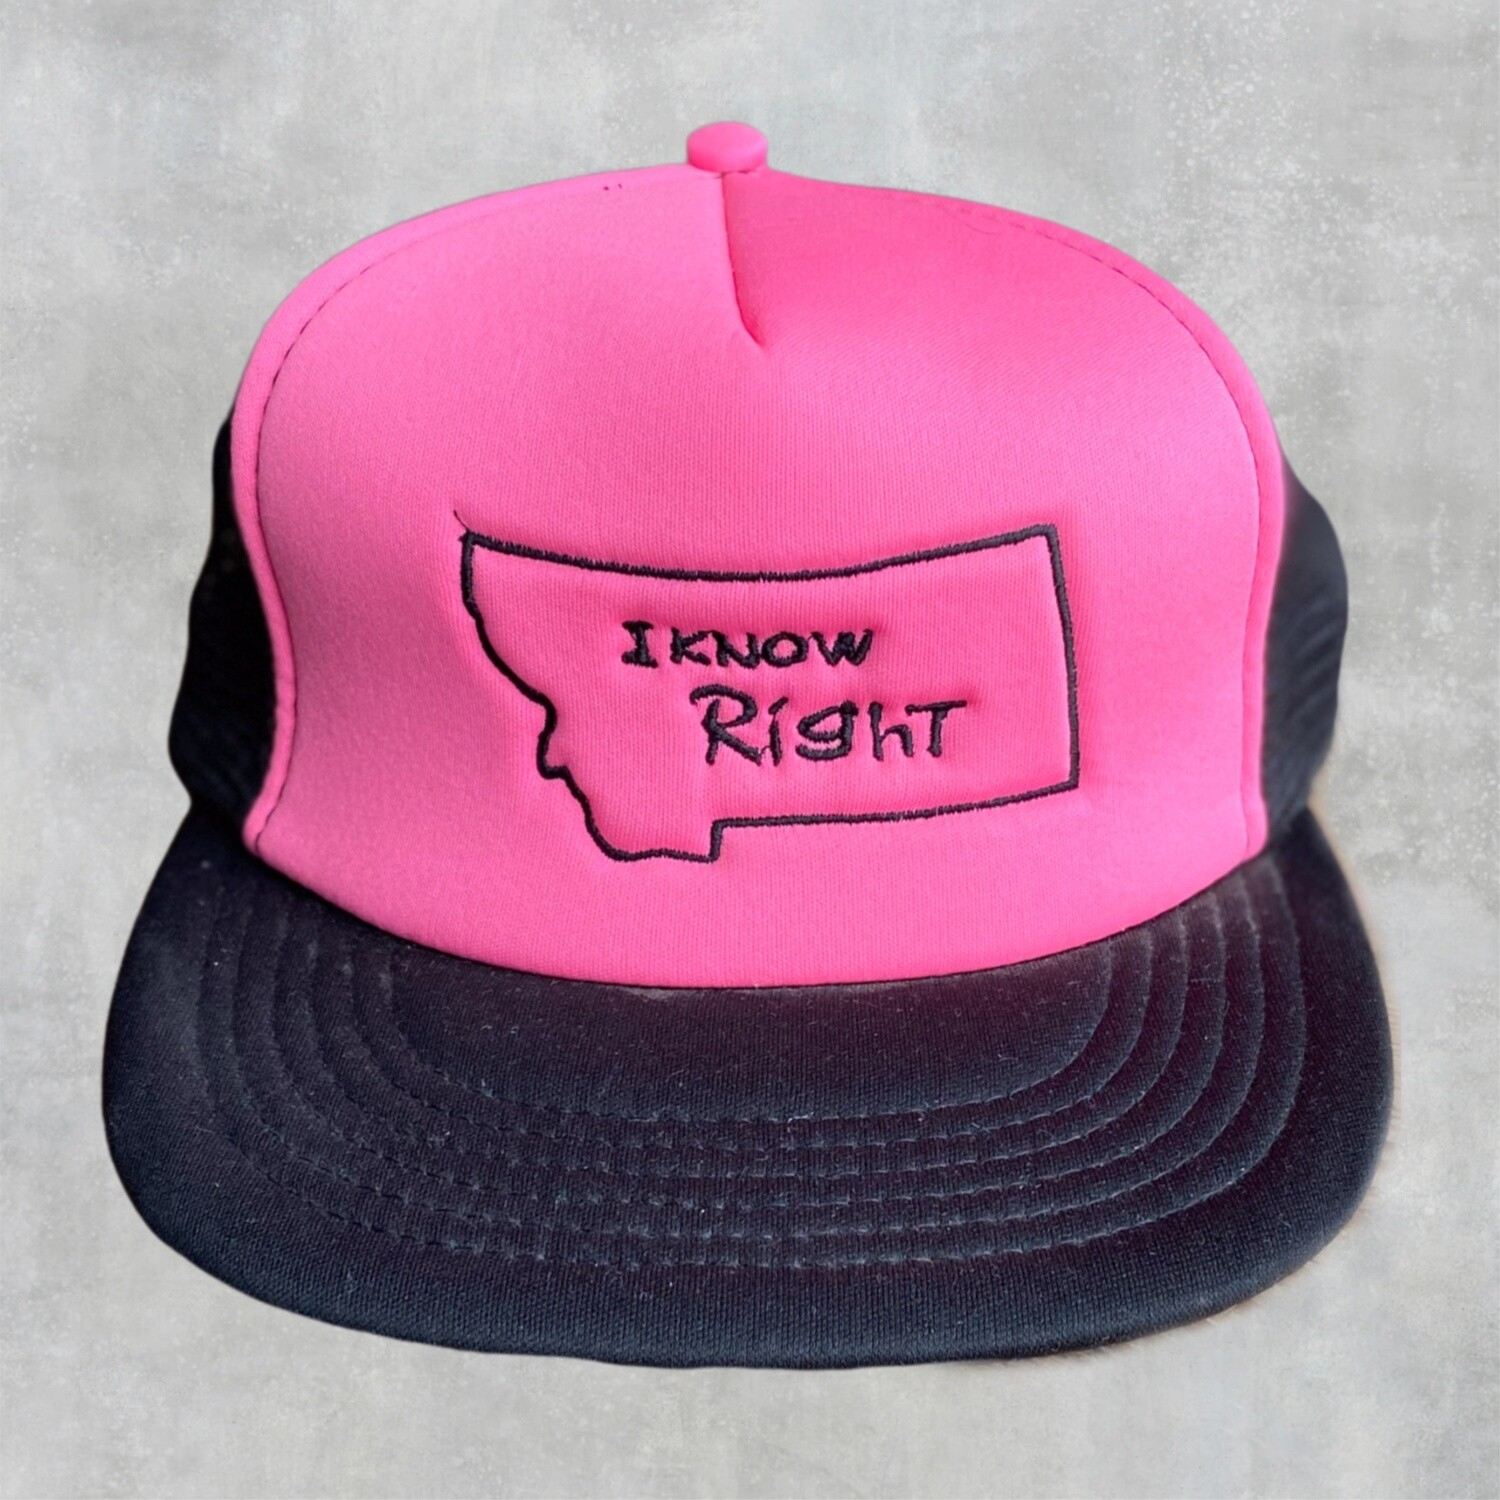 I Know Right - Flat Bill Hot Pink/Black